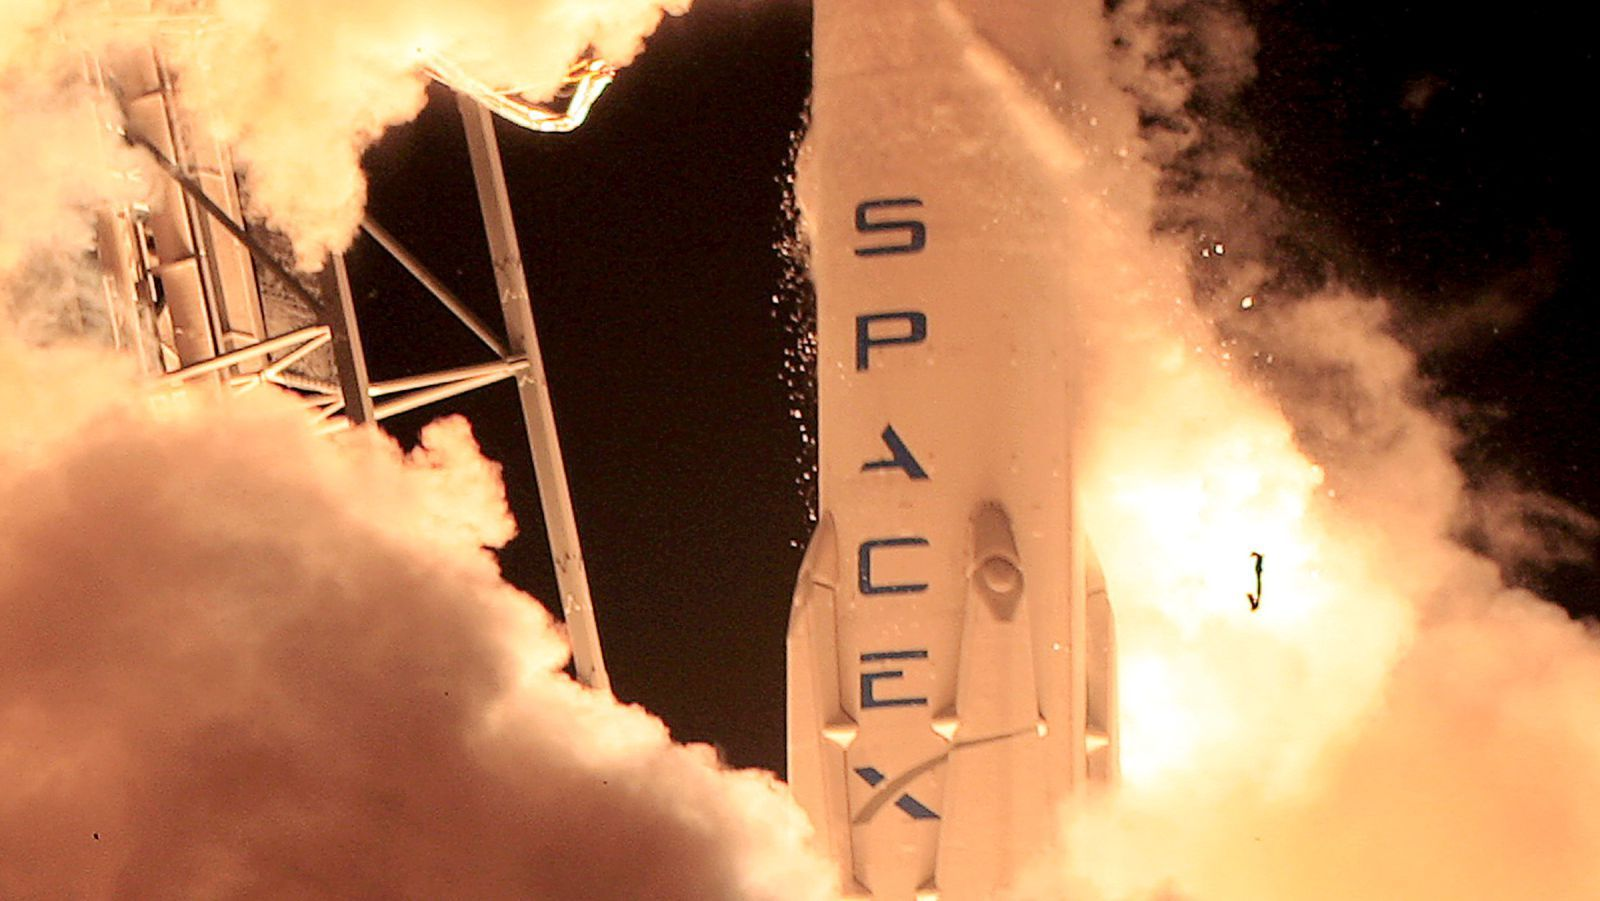 SpaceX's rocket landing is a big moment for Elon Musk—and for the economics of the space business